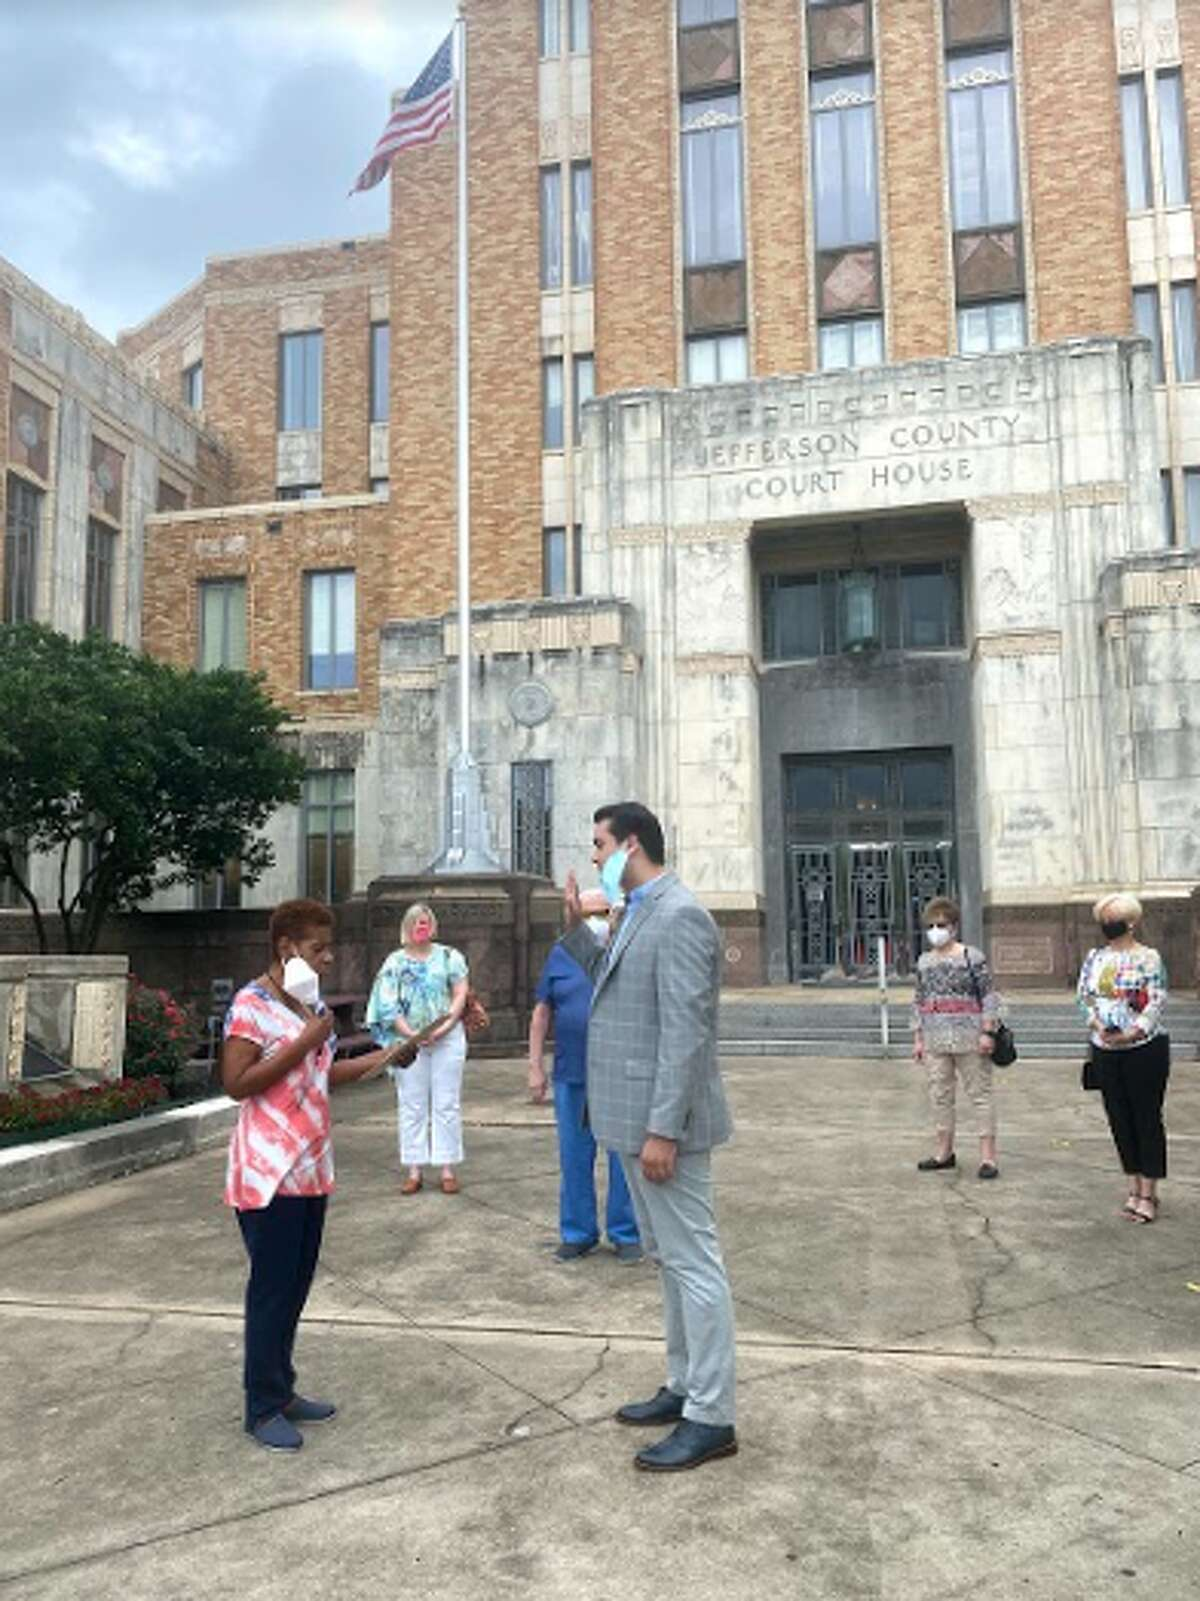 Joseph Trahan, 24, on Monday morning was sworn in on the steps of the Jefferson County Courthouse to become the county Democratic Party's youngest chairman.